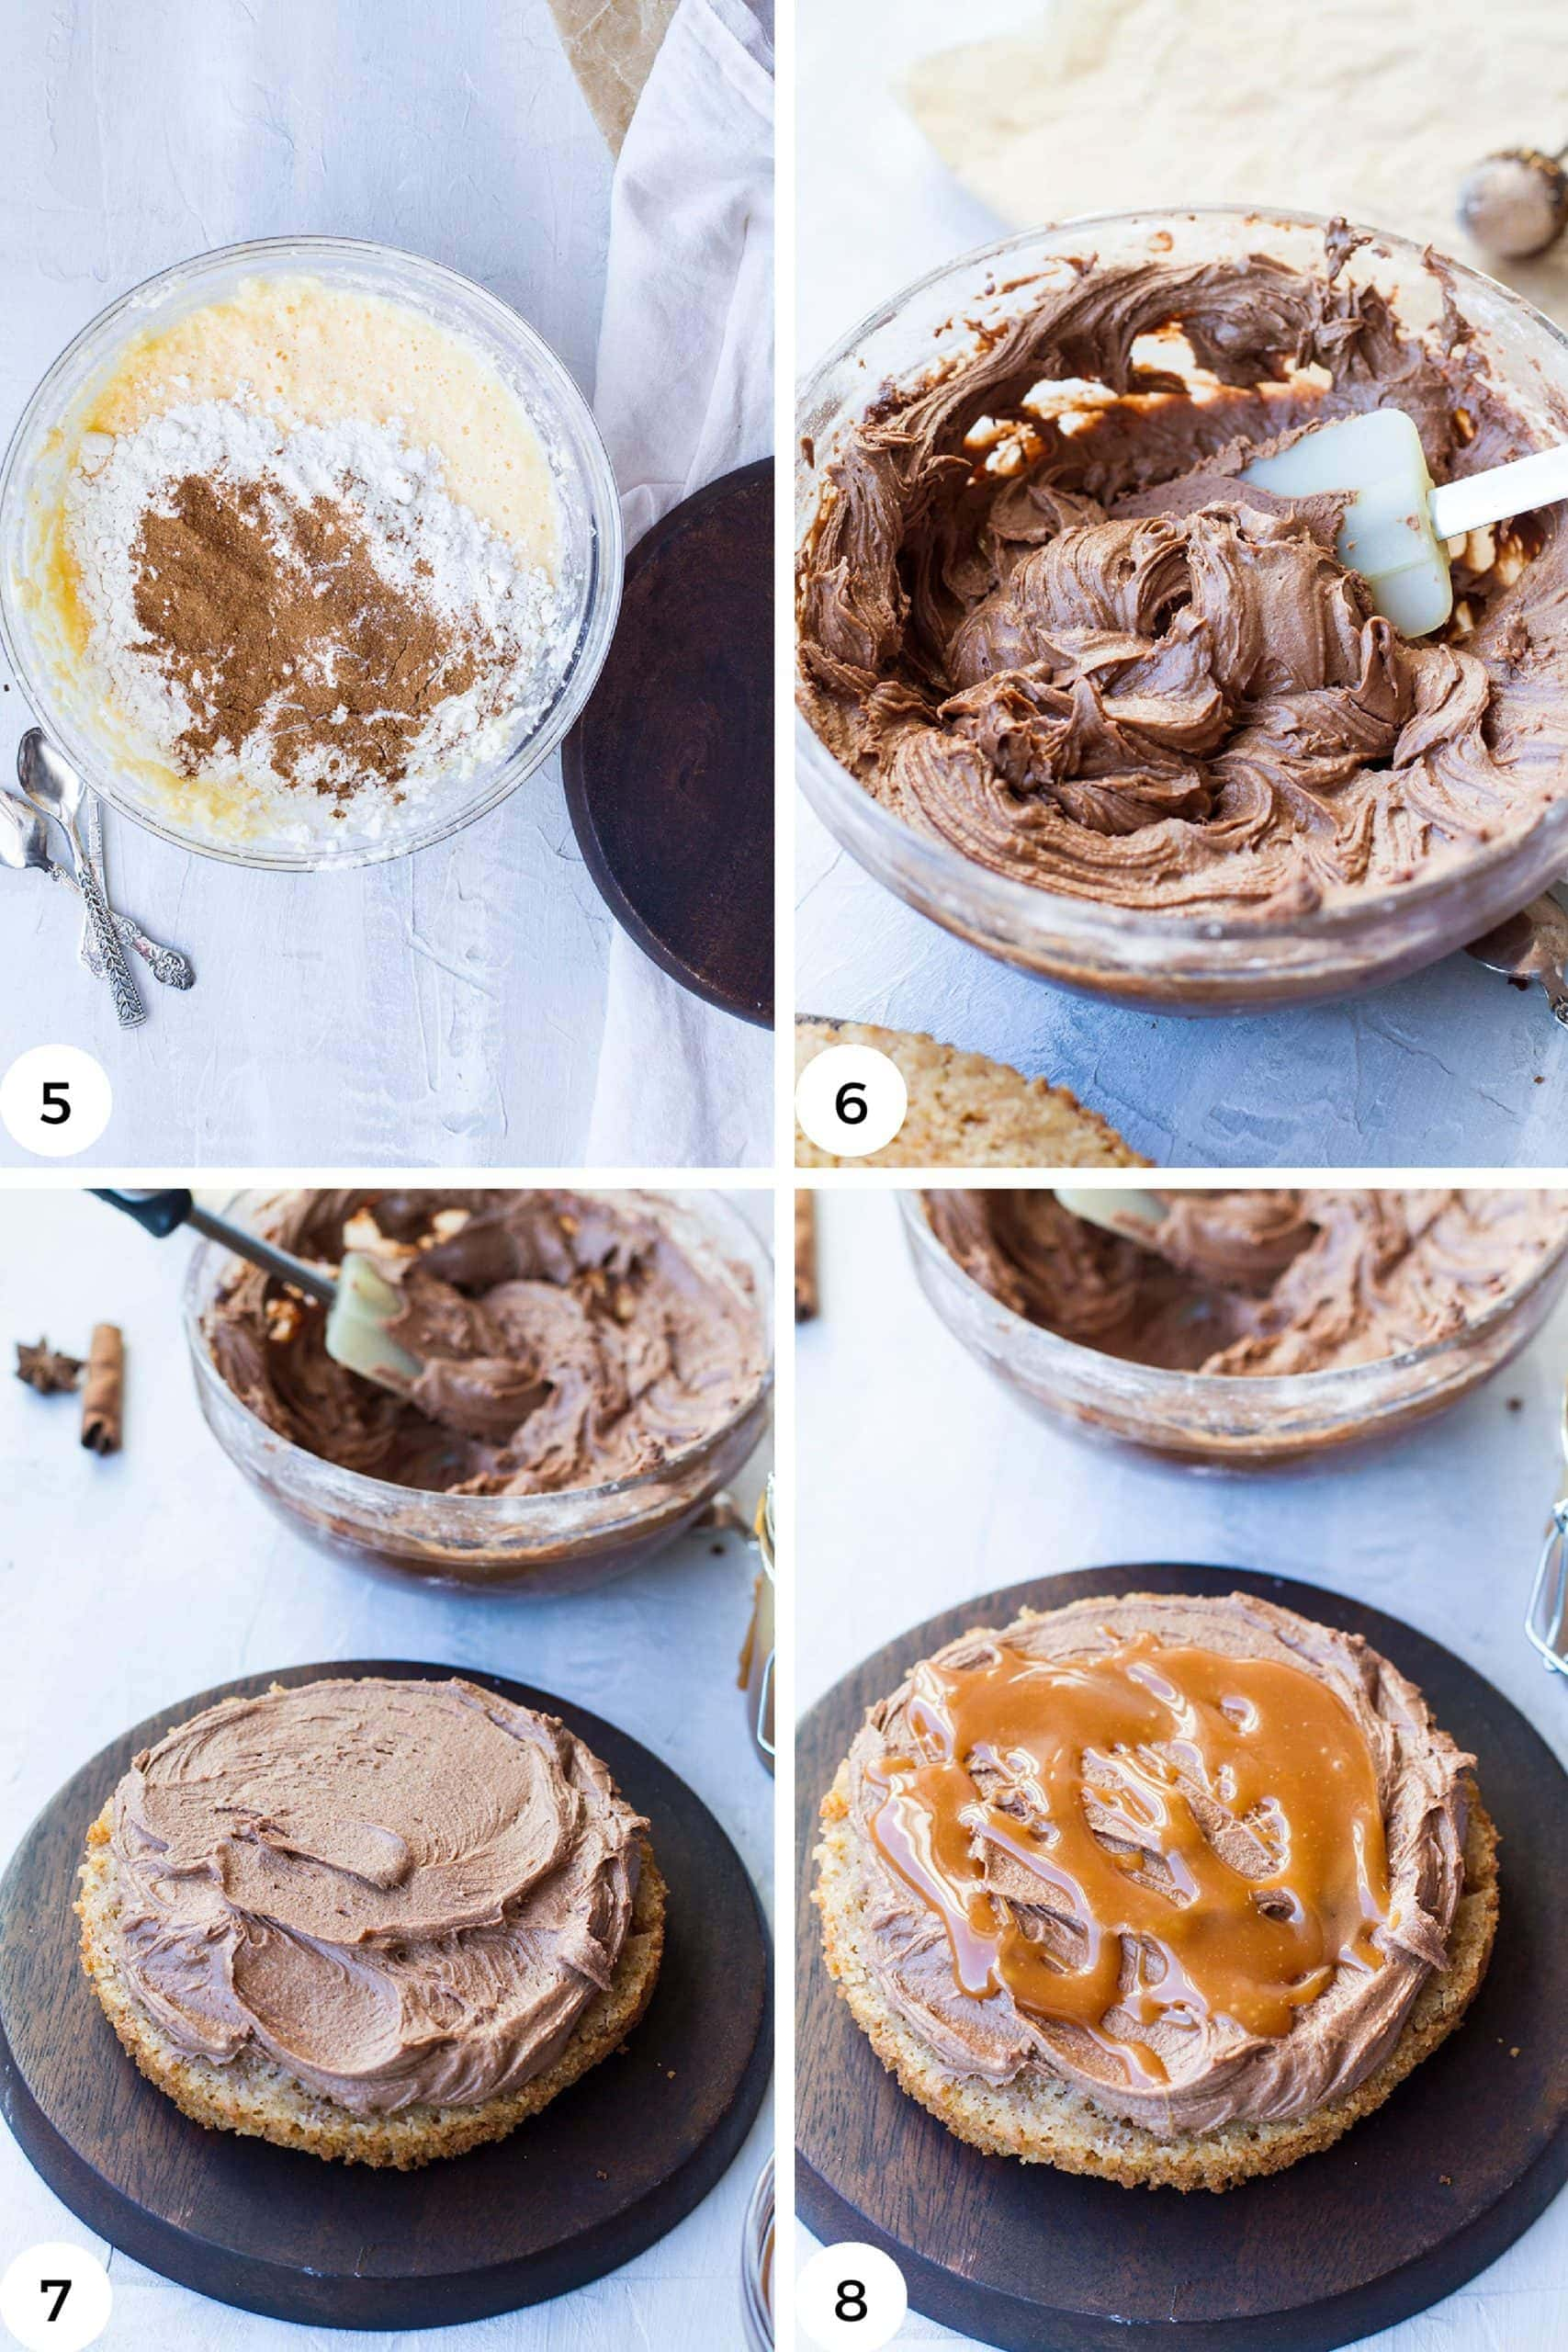 Steps to make the coffee buttercream.